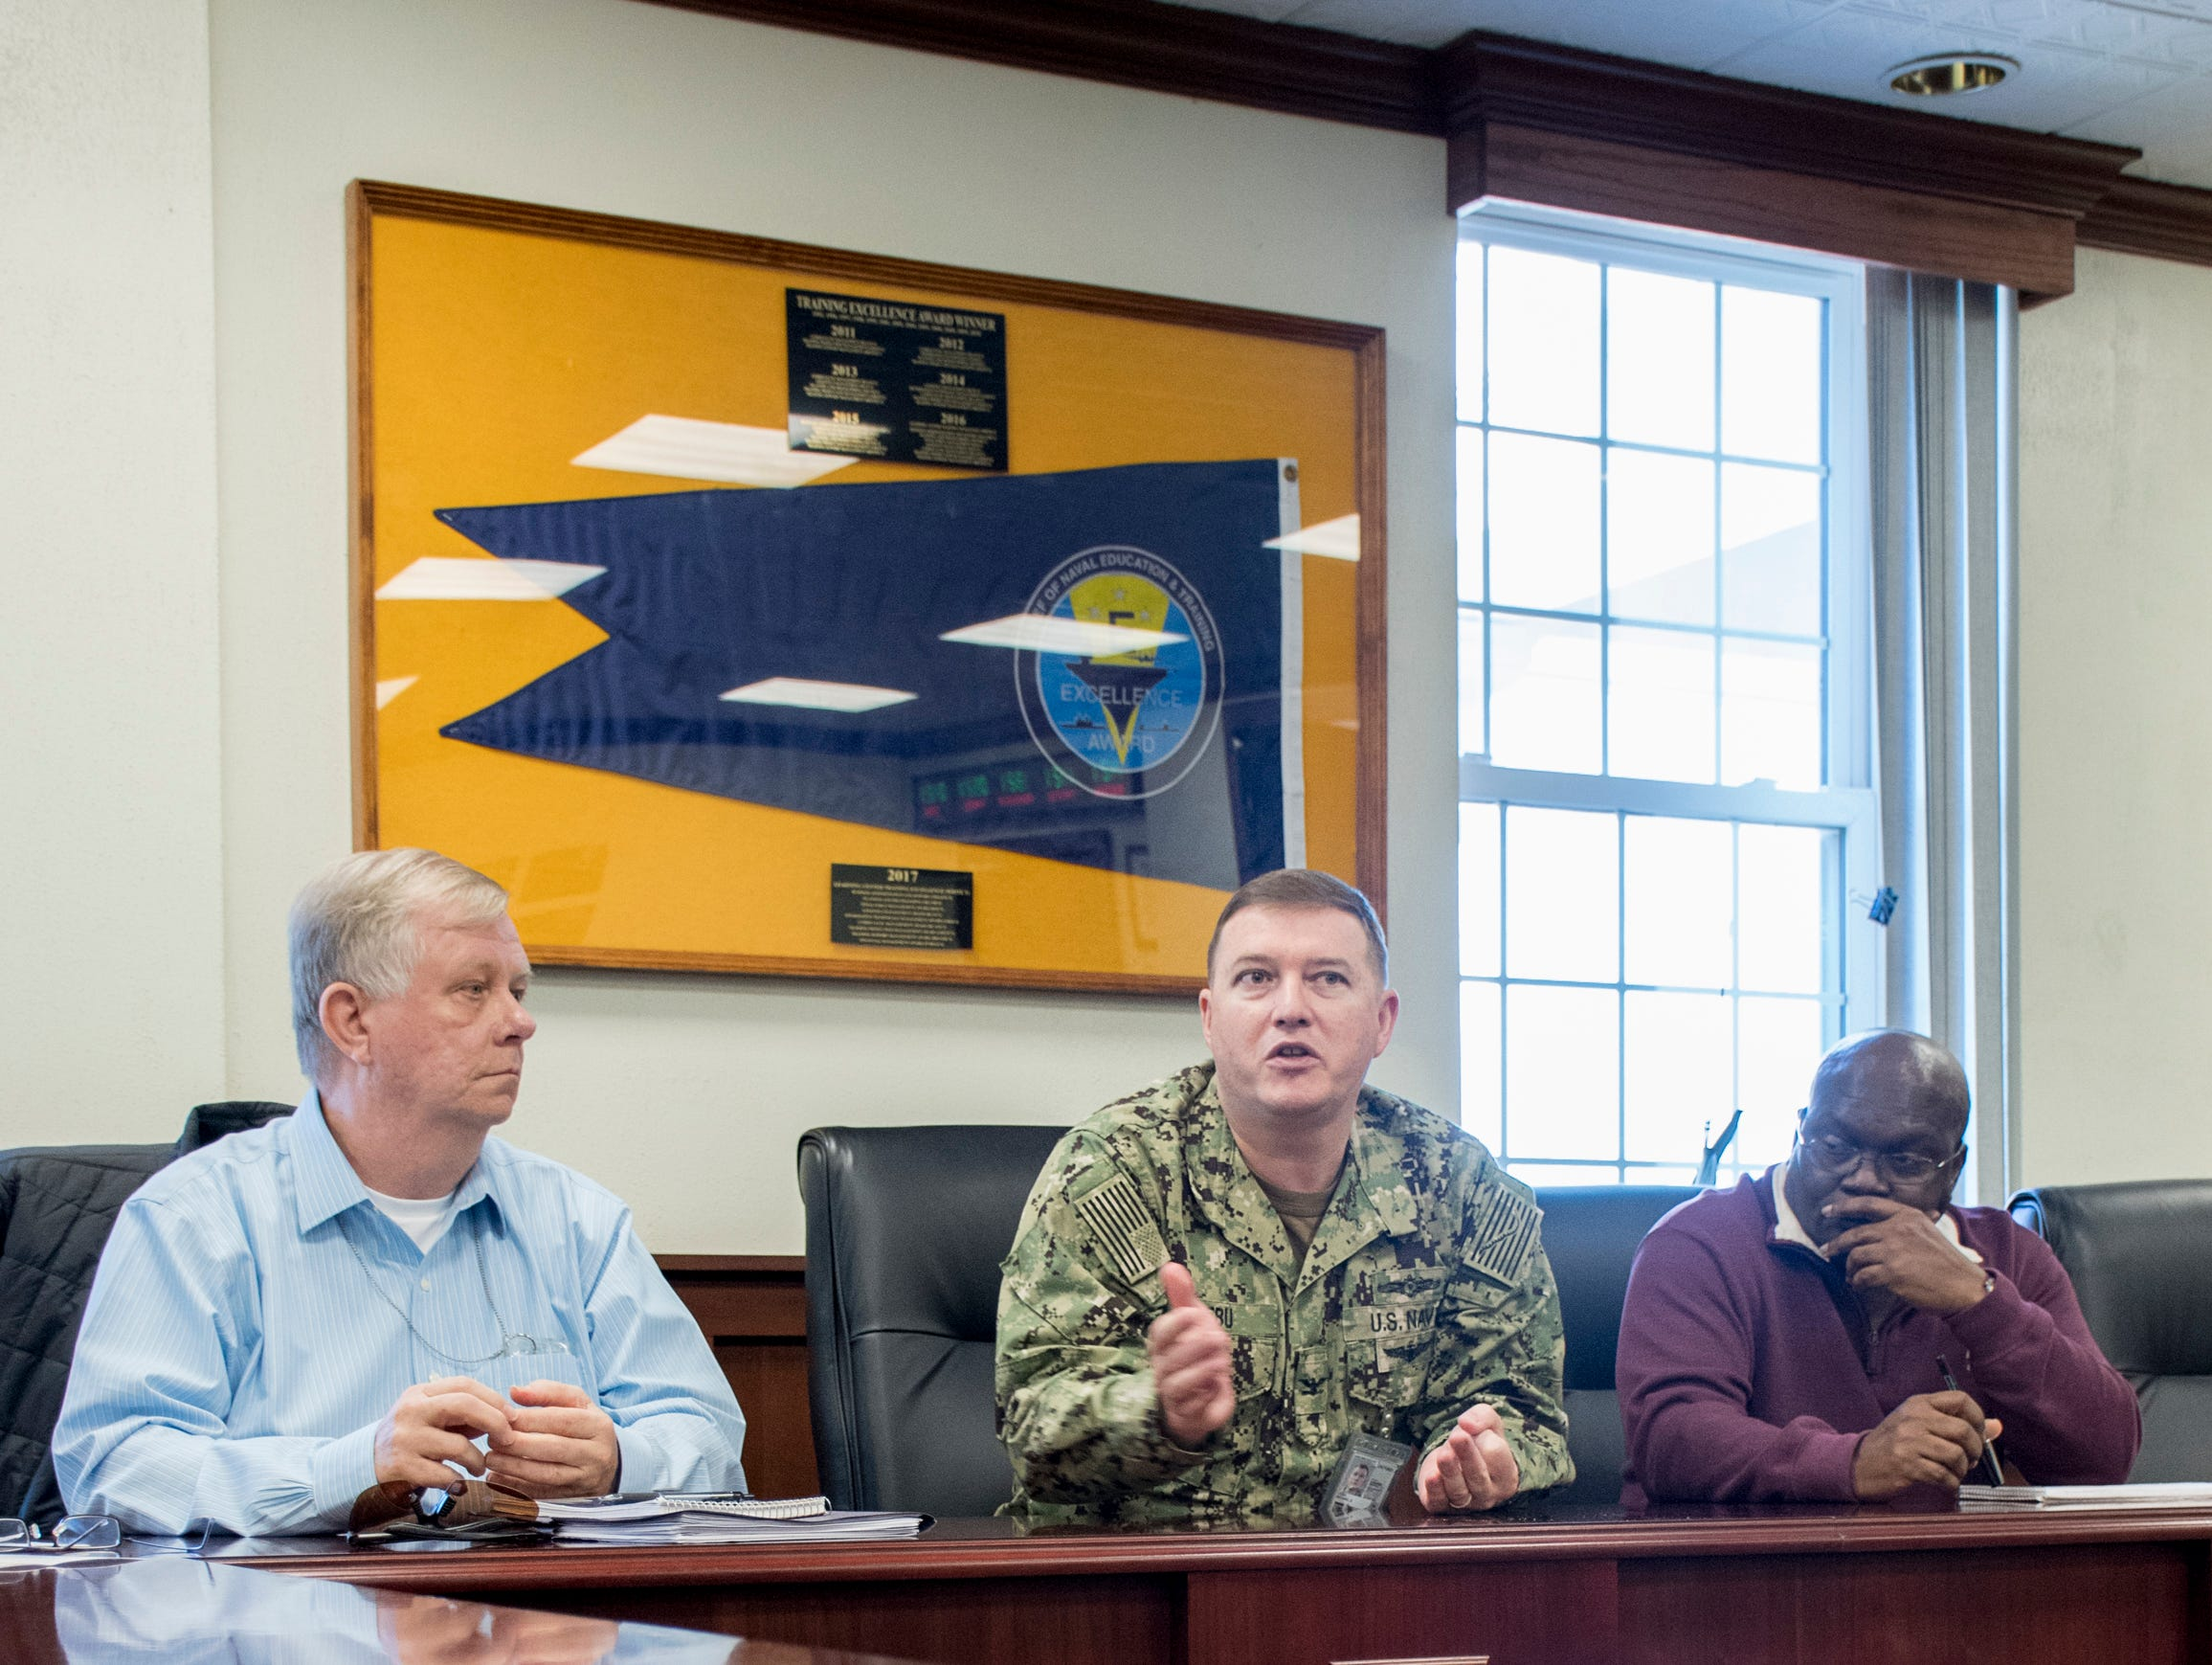 Capt. Mike Lebu, Cyber Mission Force program manager, center, talks about the building projects and expansion underway at NAS Pensacola Corry Station in Pensacola on Thursday, January 10, 2019.